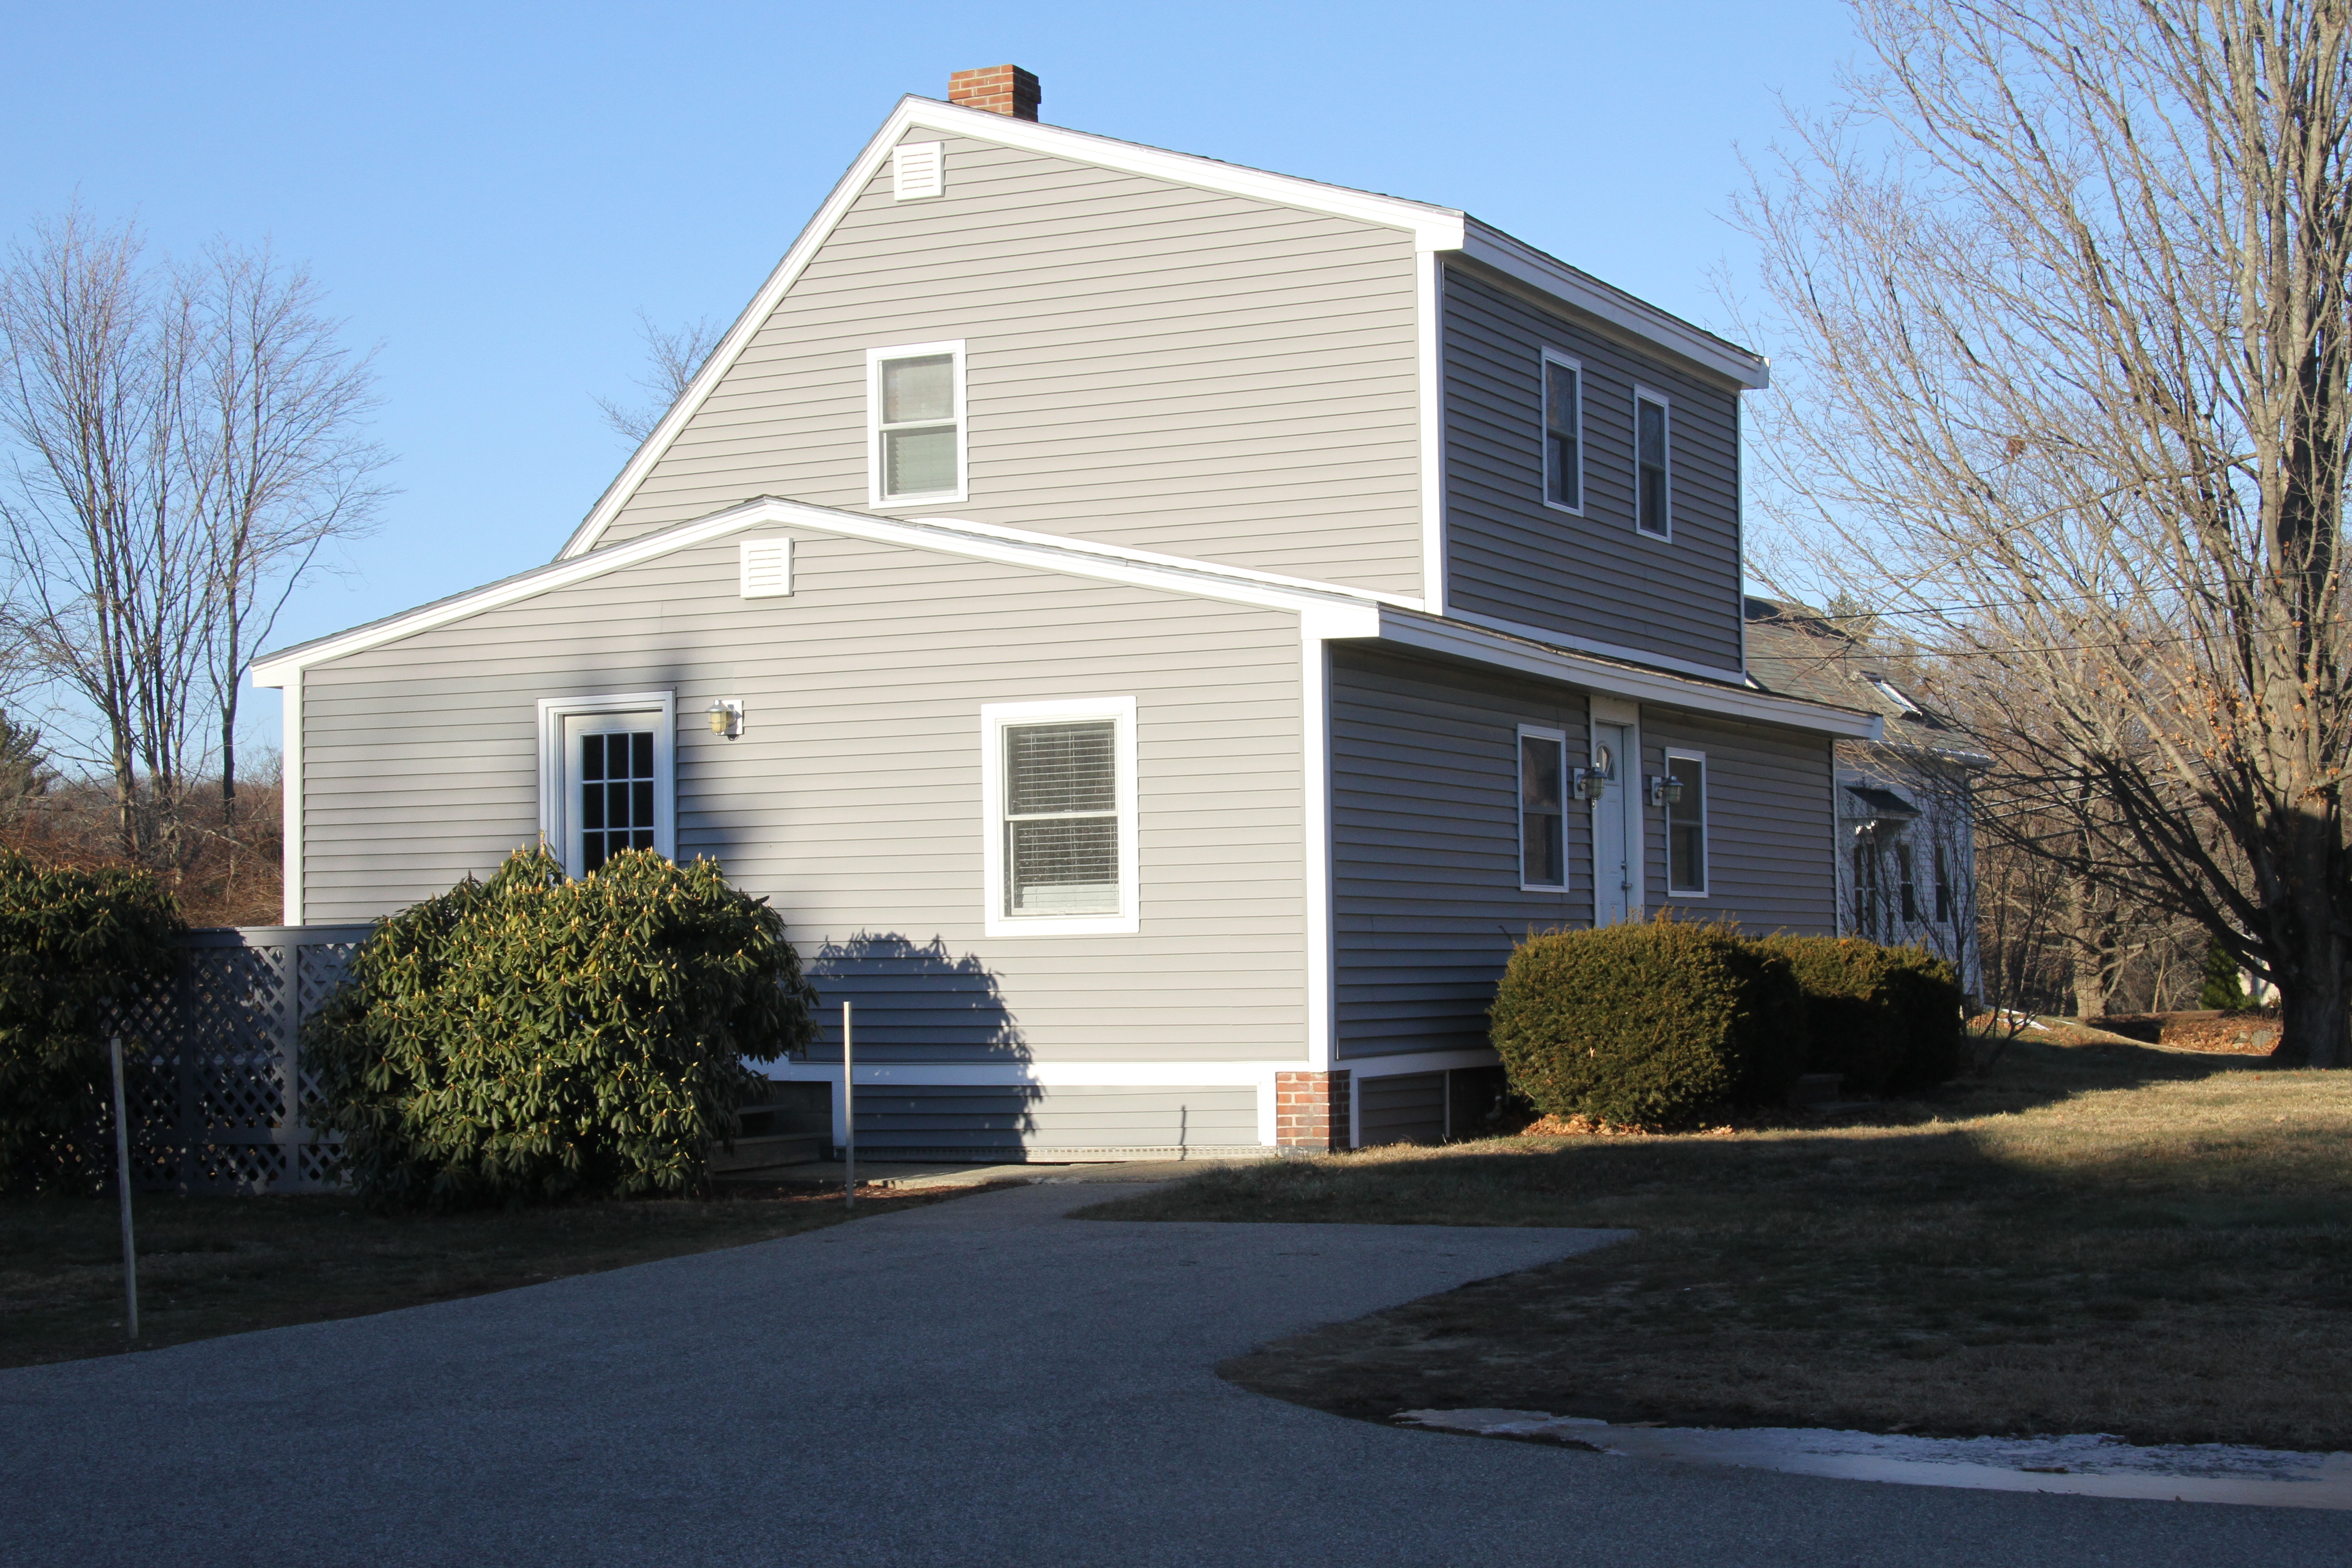 estate houses rye pineo seabrook mls farms new cottages in open real hampshire nh